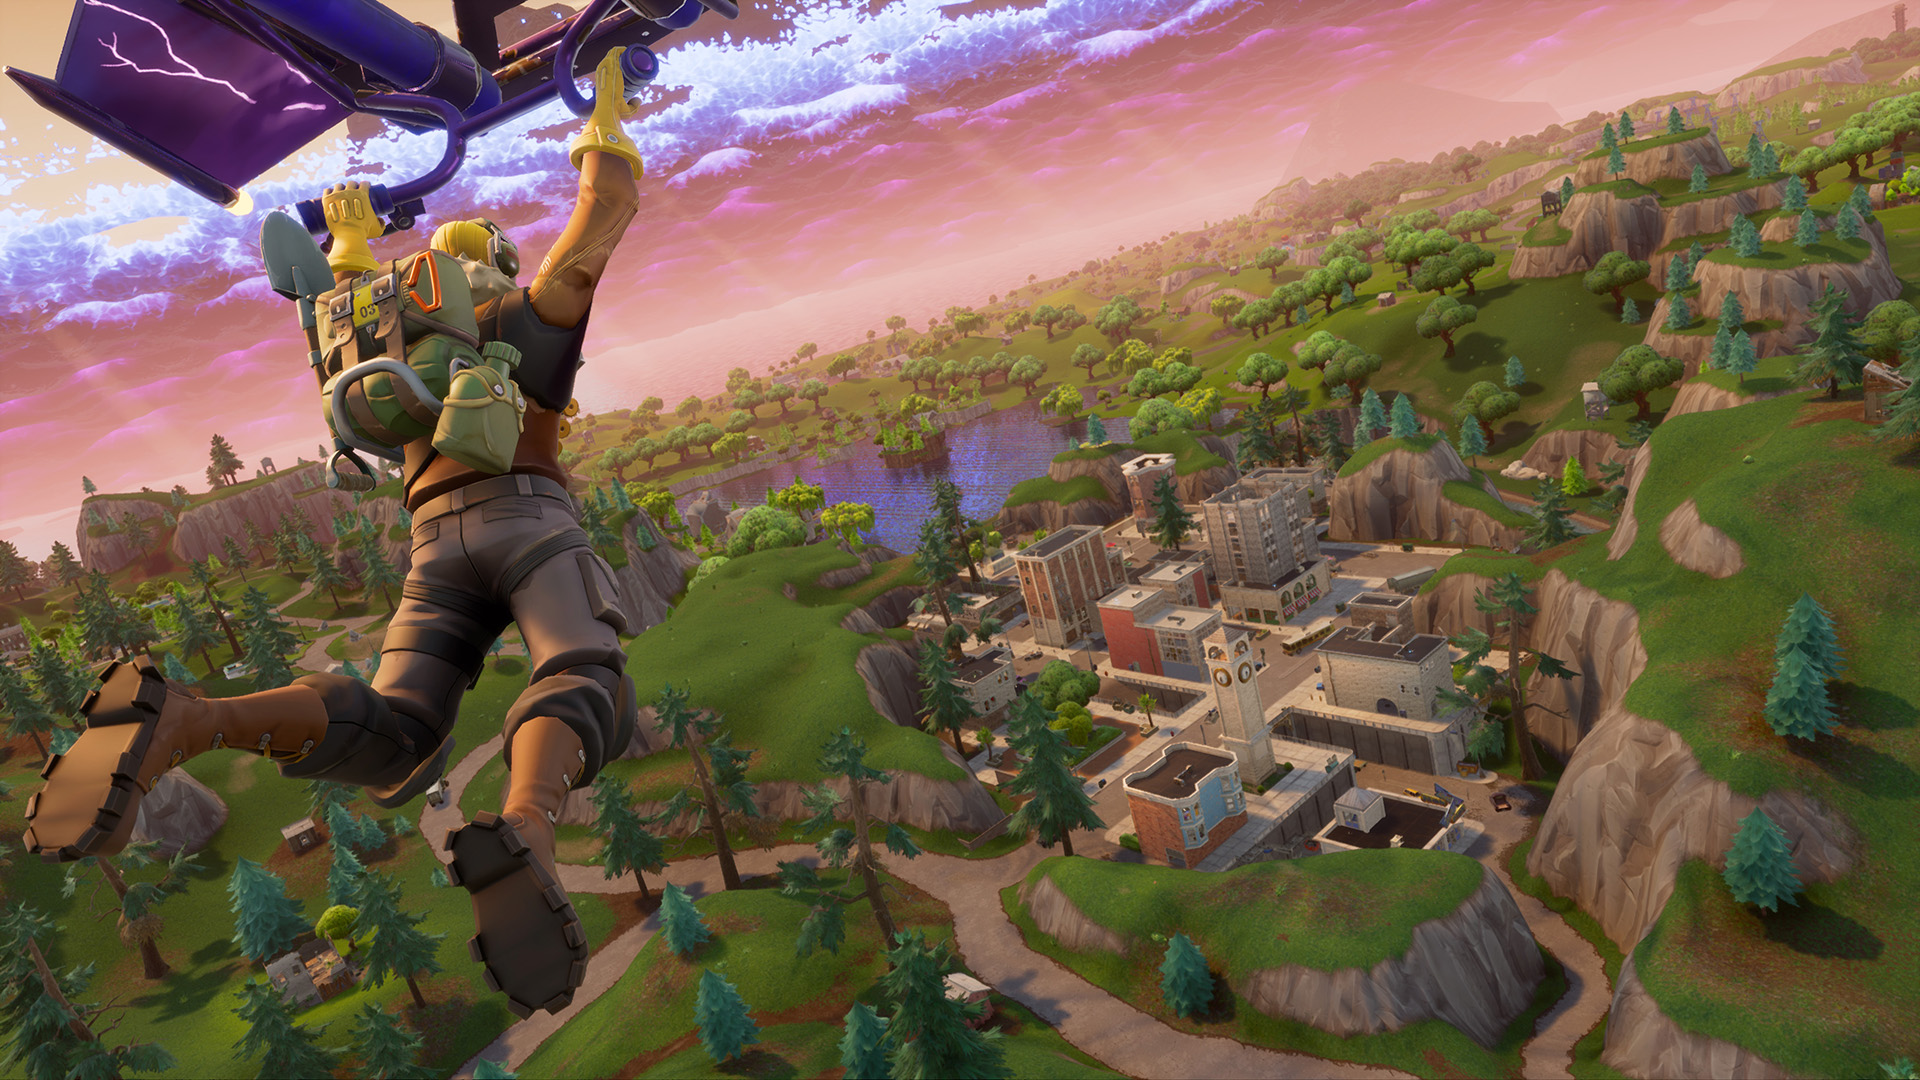 Fortnite - a character rides a glider into a town